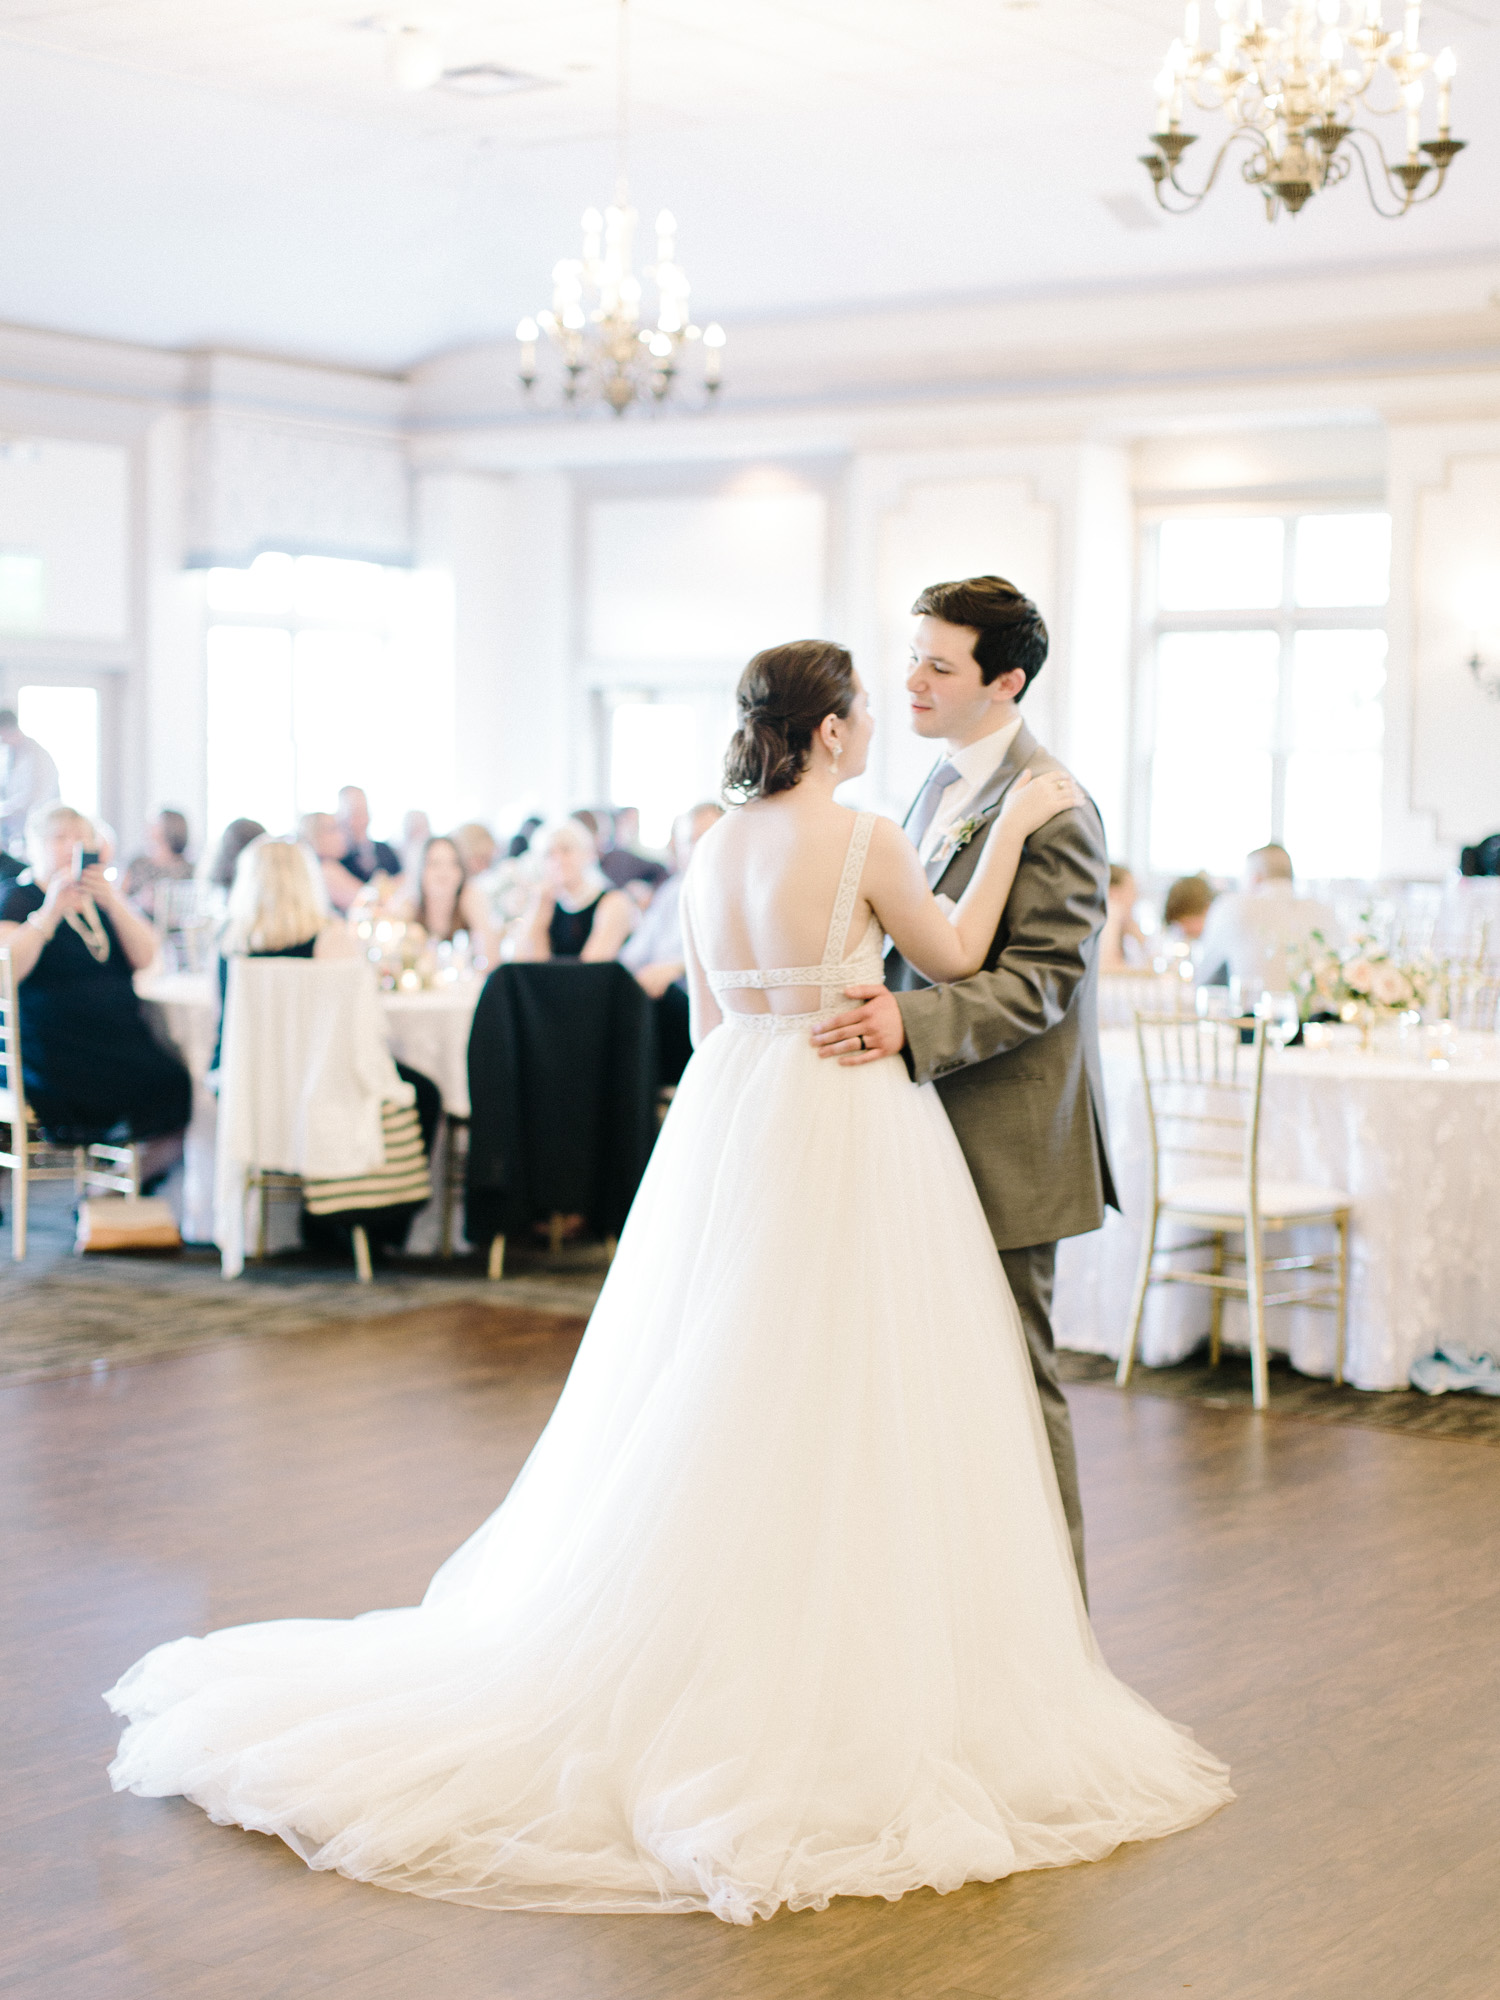 A bride and groom share their first dance at The Polo Fields